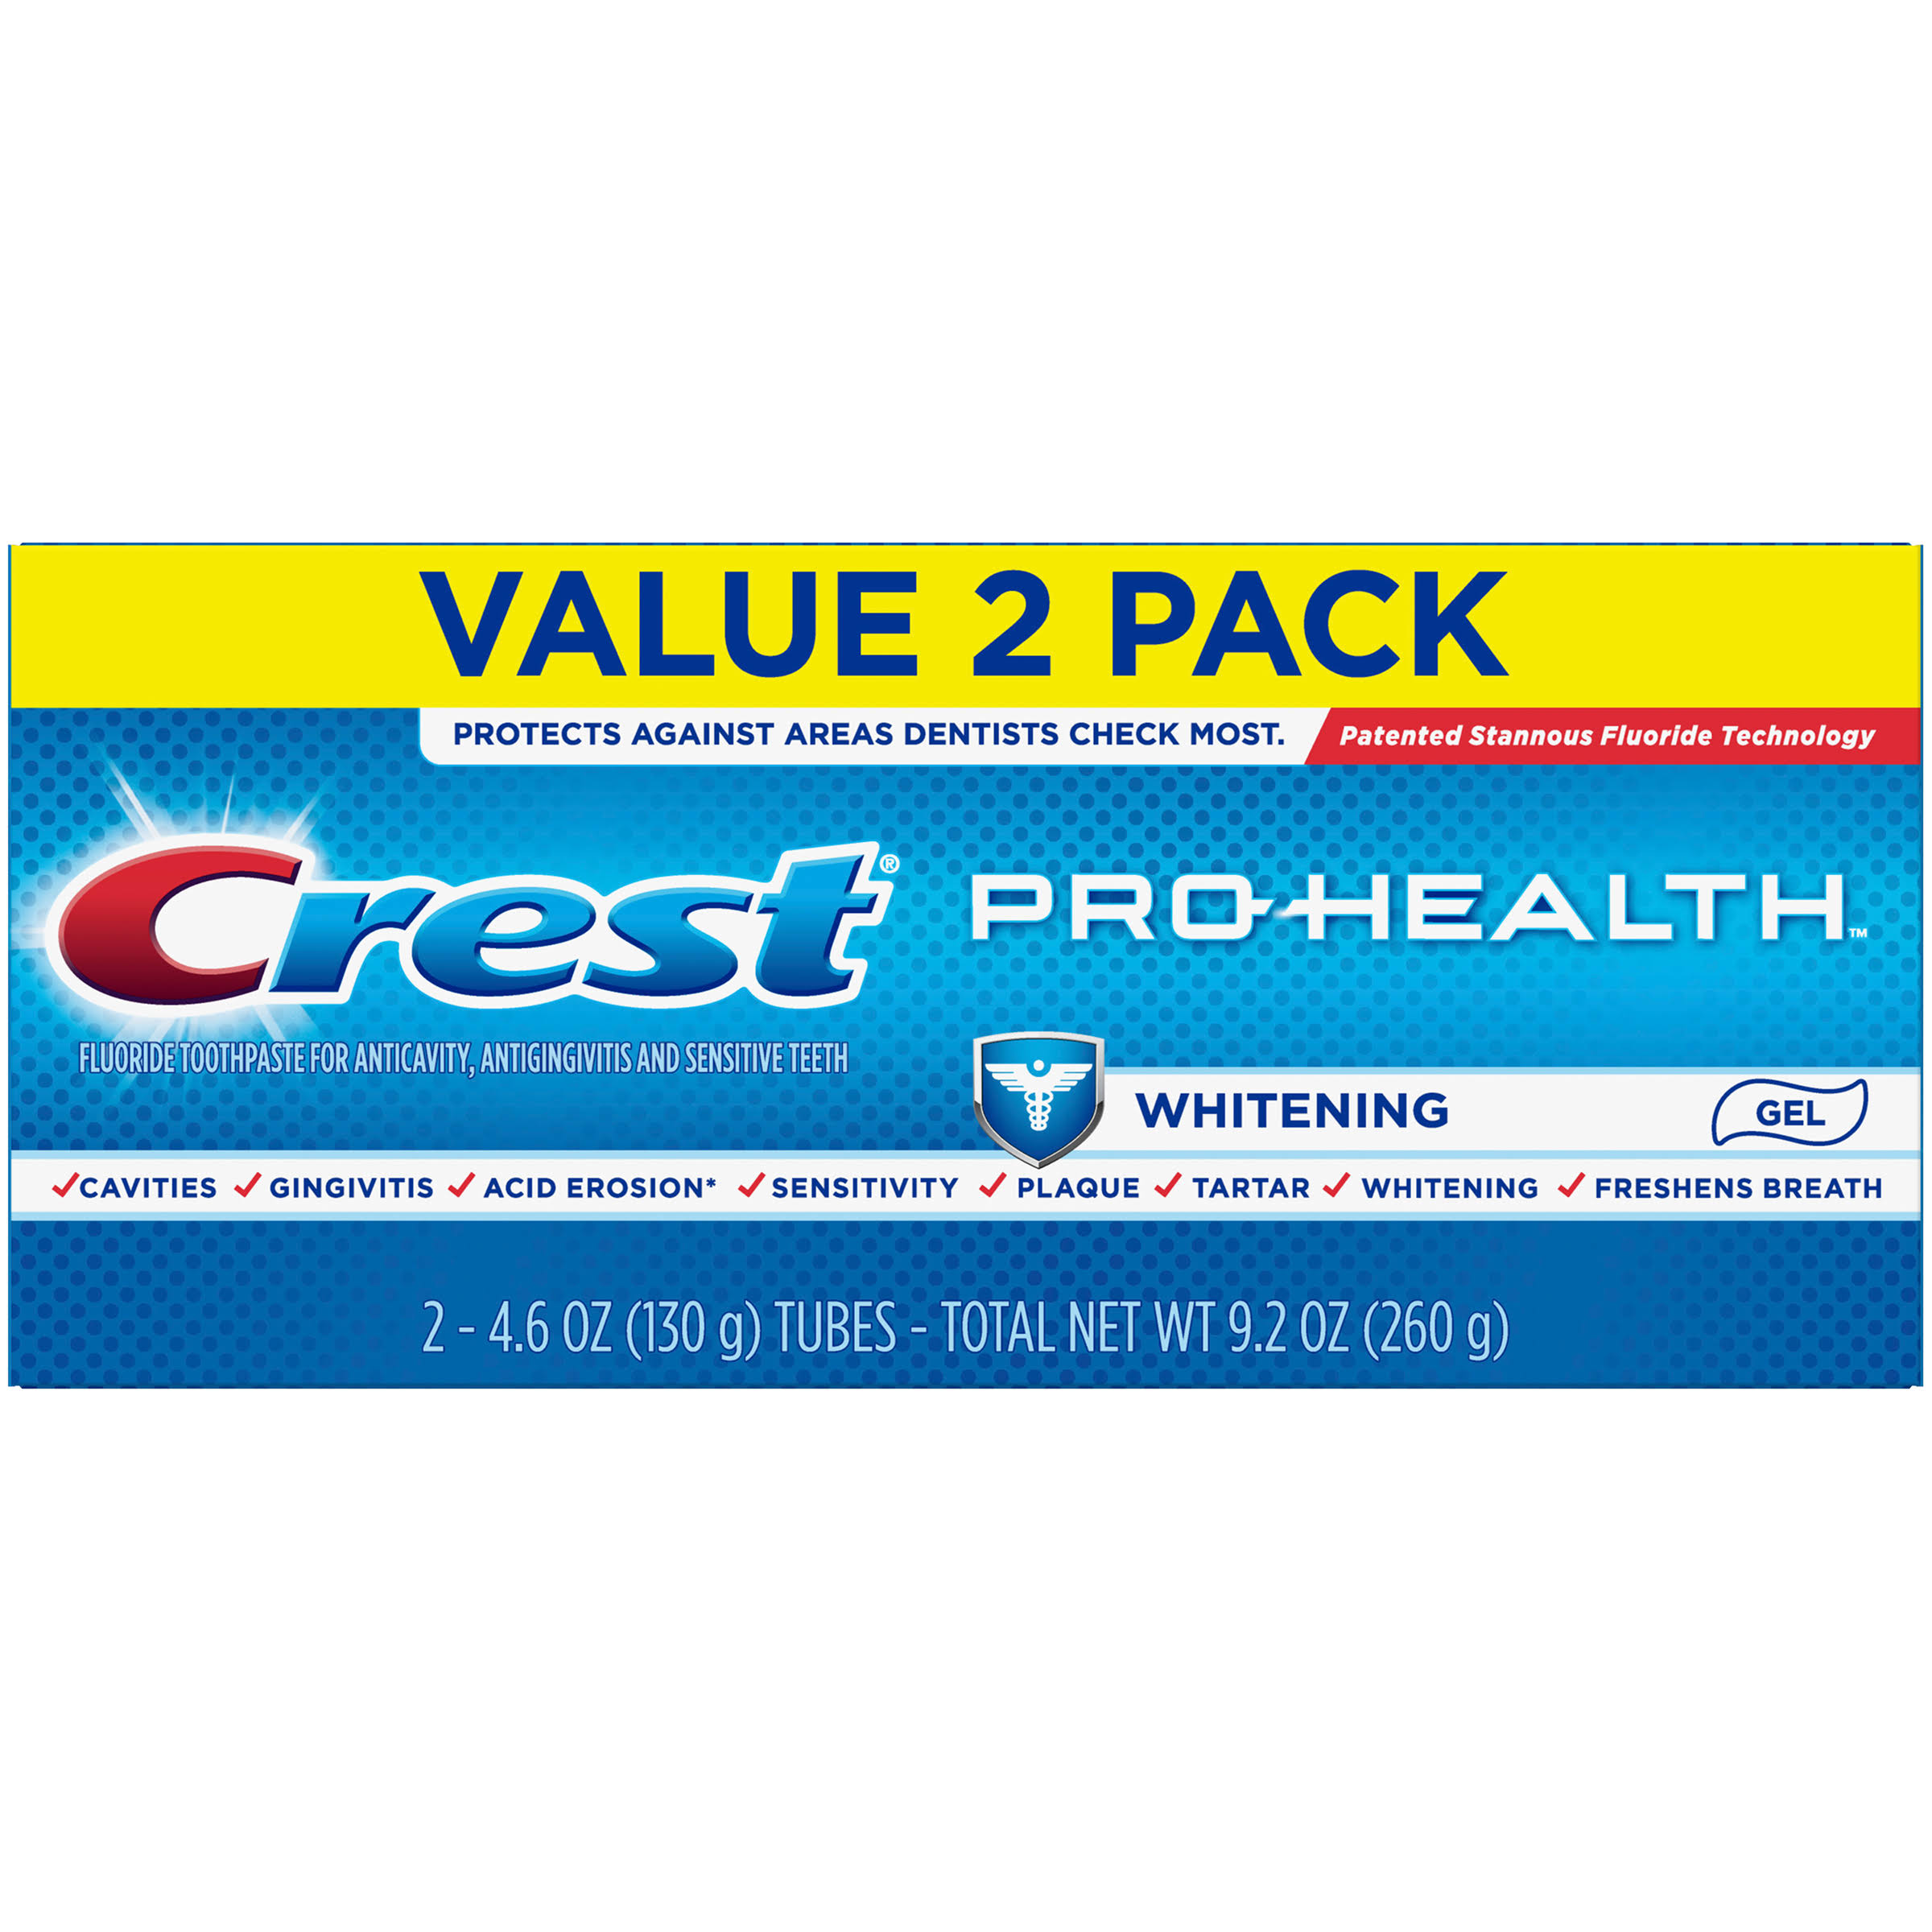 Crest Pro Health Whitening Power Fluoride Toothpaste Value Pack - 2 Pack